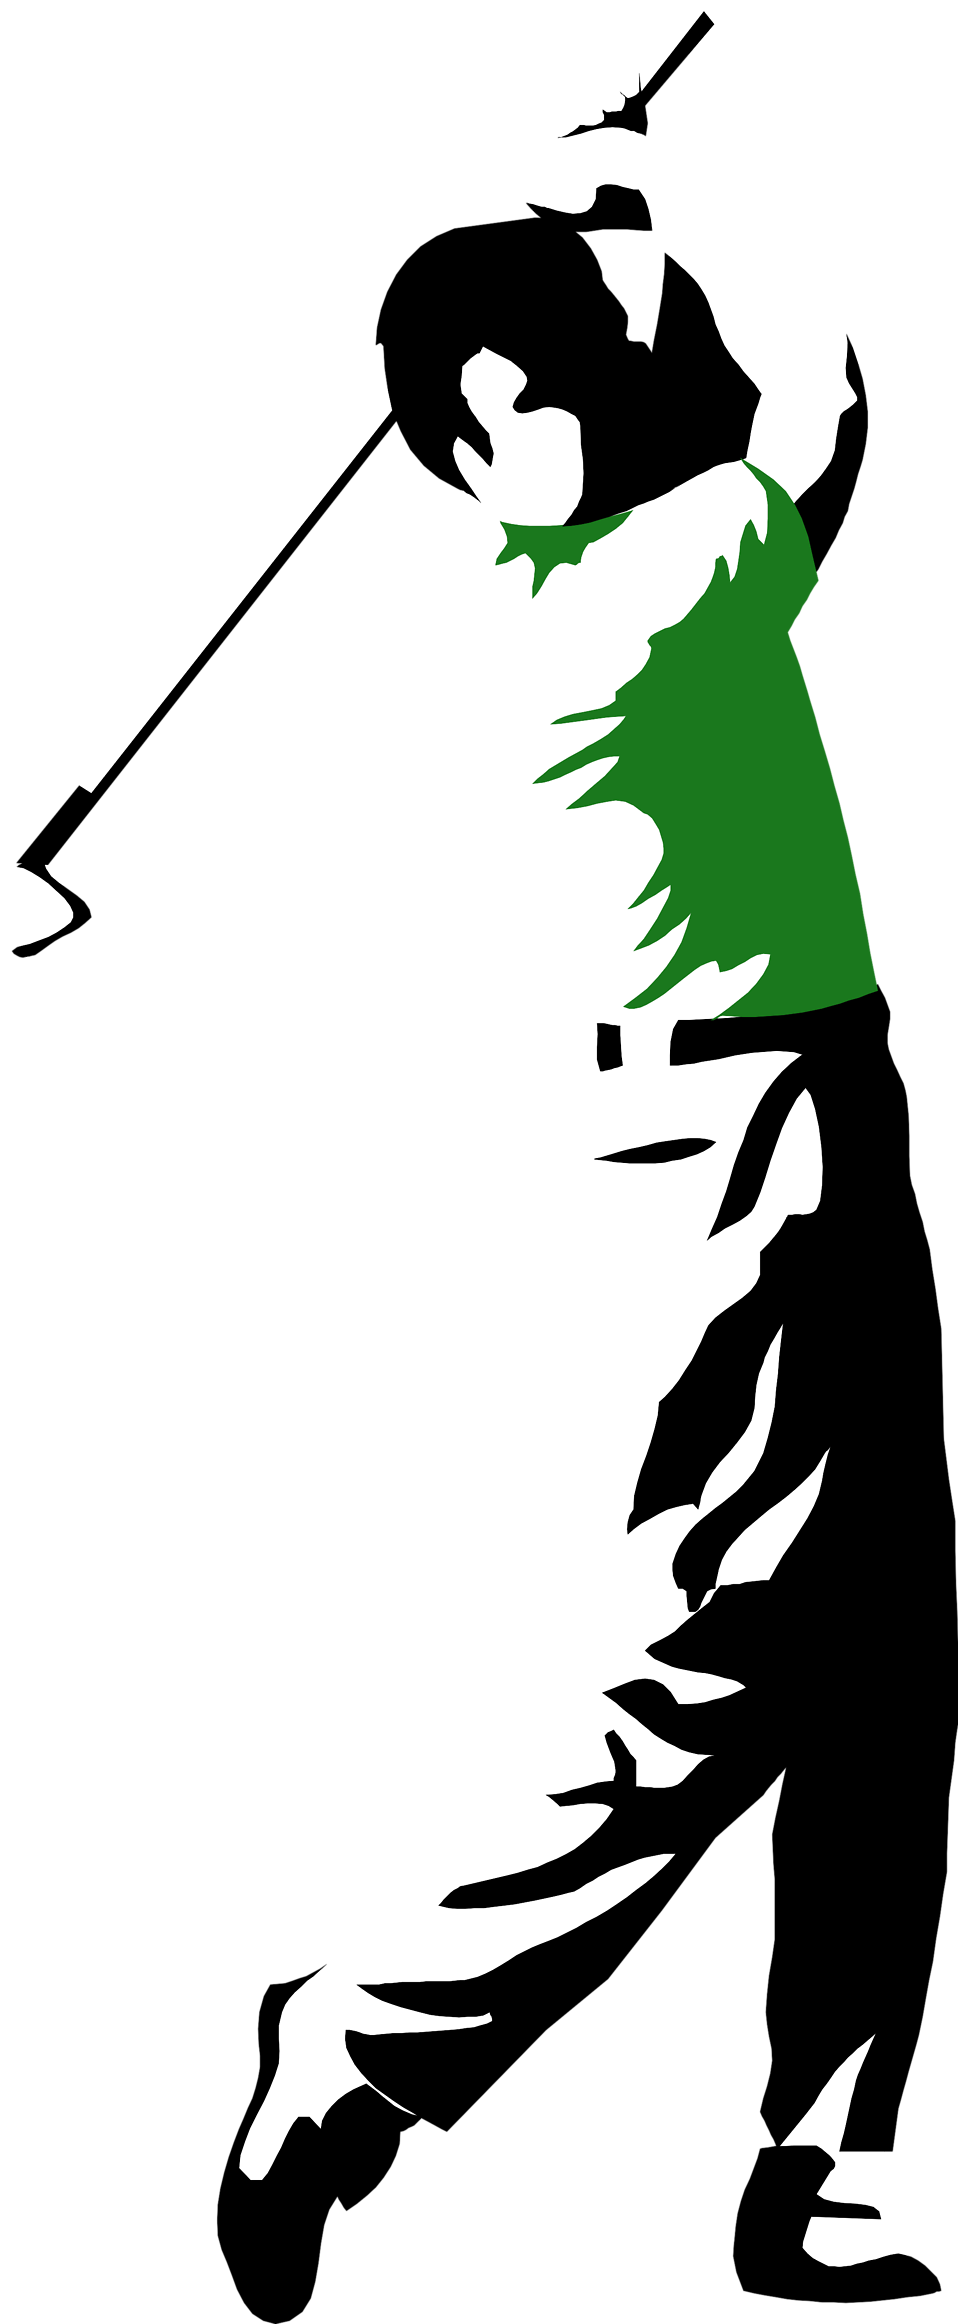 154 Golfing free clipart.